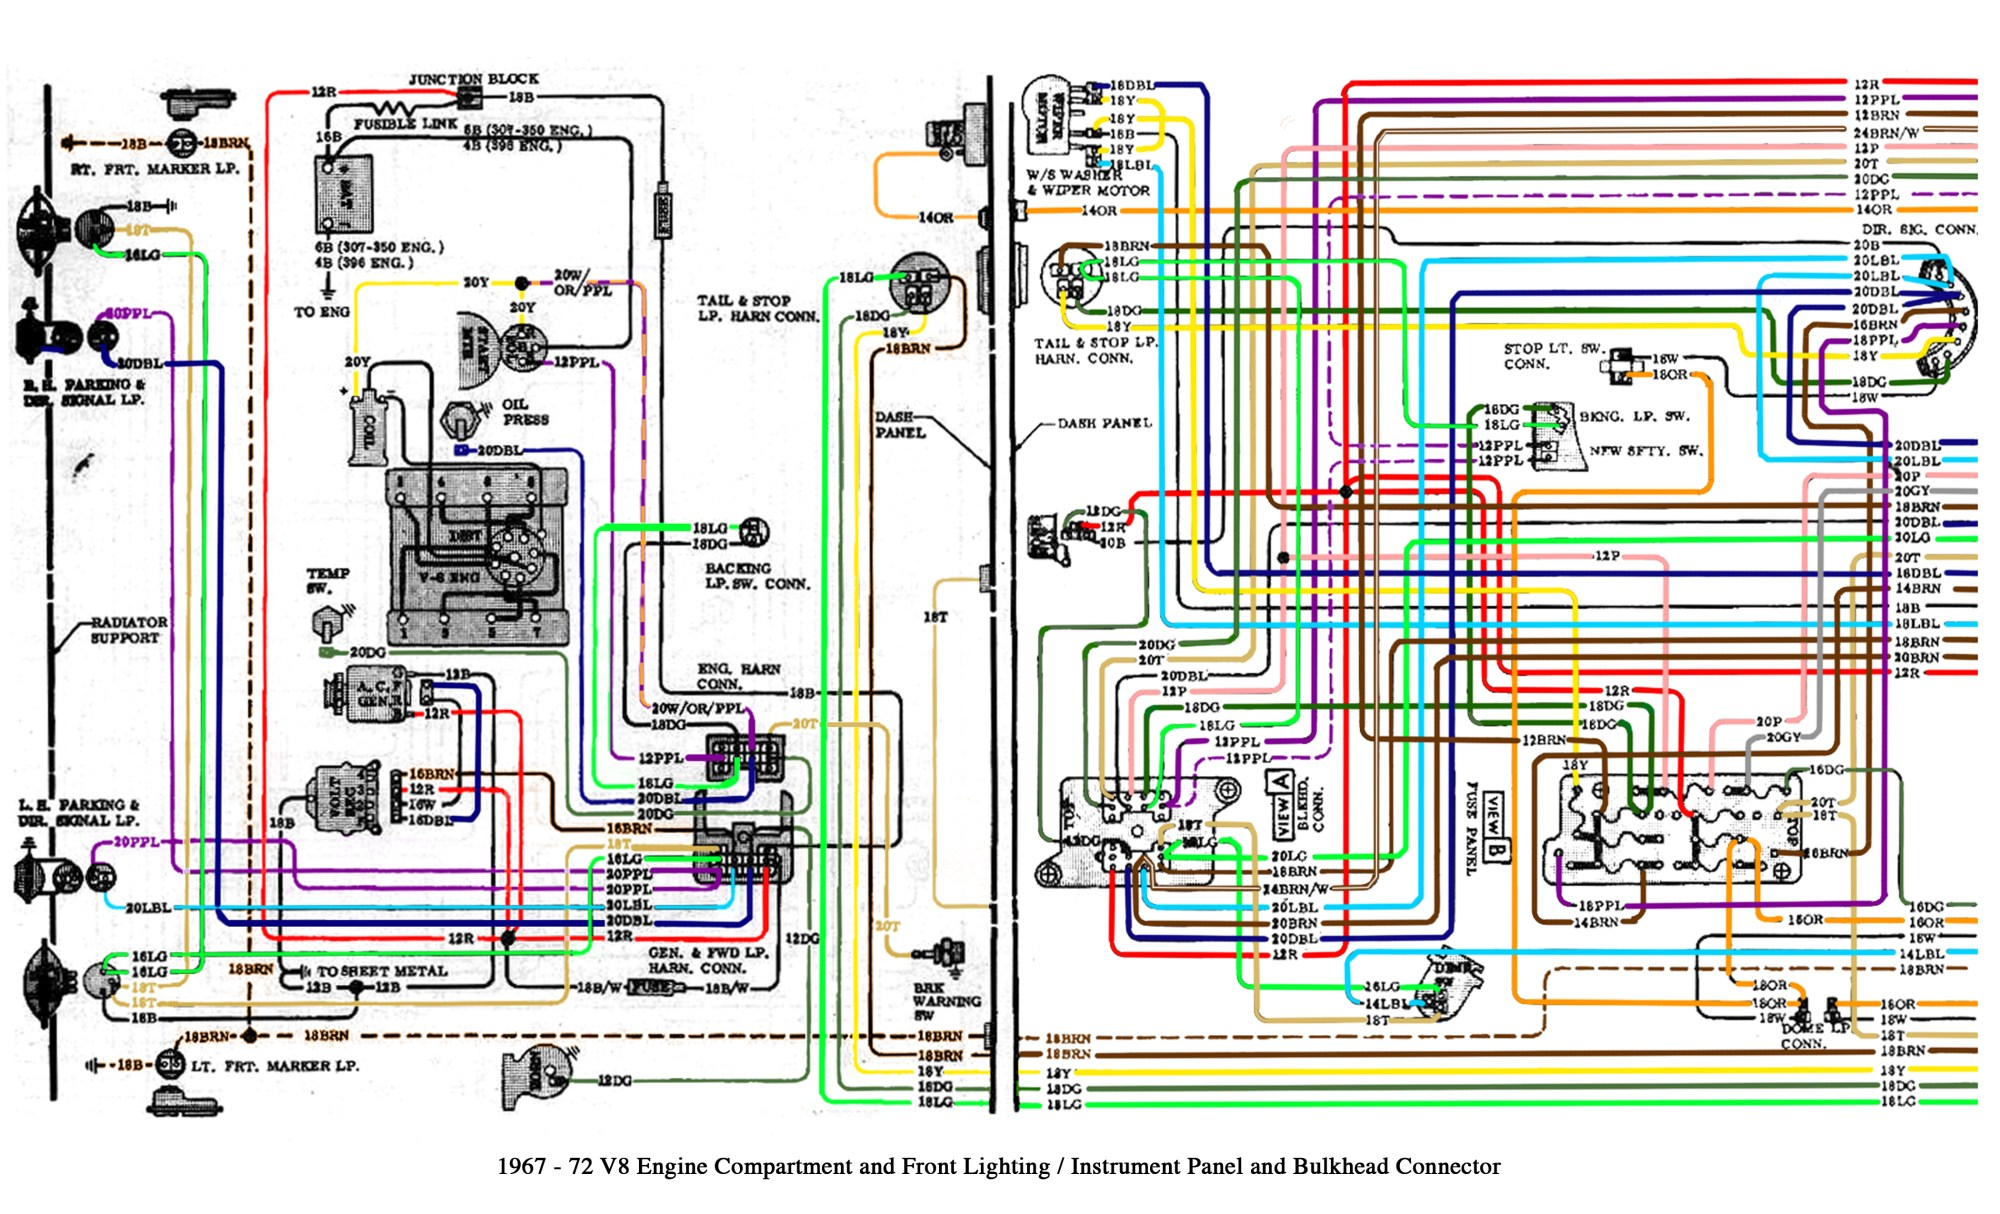 hight resolution of 1967 chevy truck wiring harness wiring diagram blogs 64 chevy wiring diagram chevy truck wiring wiring